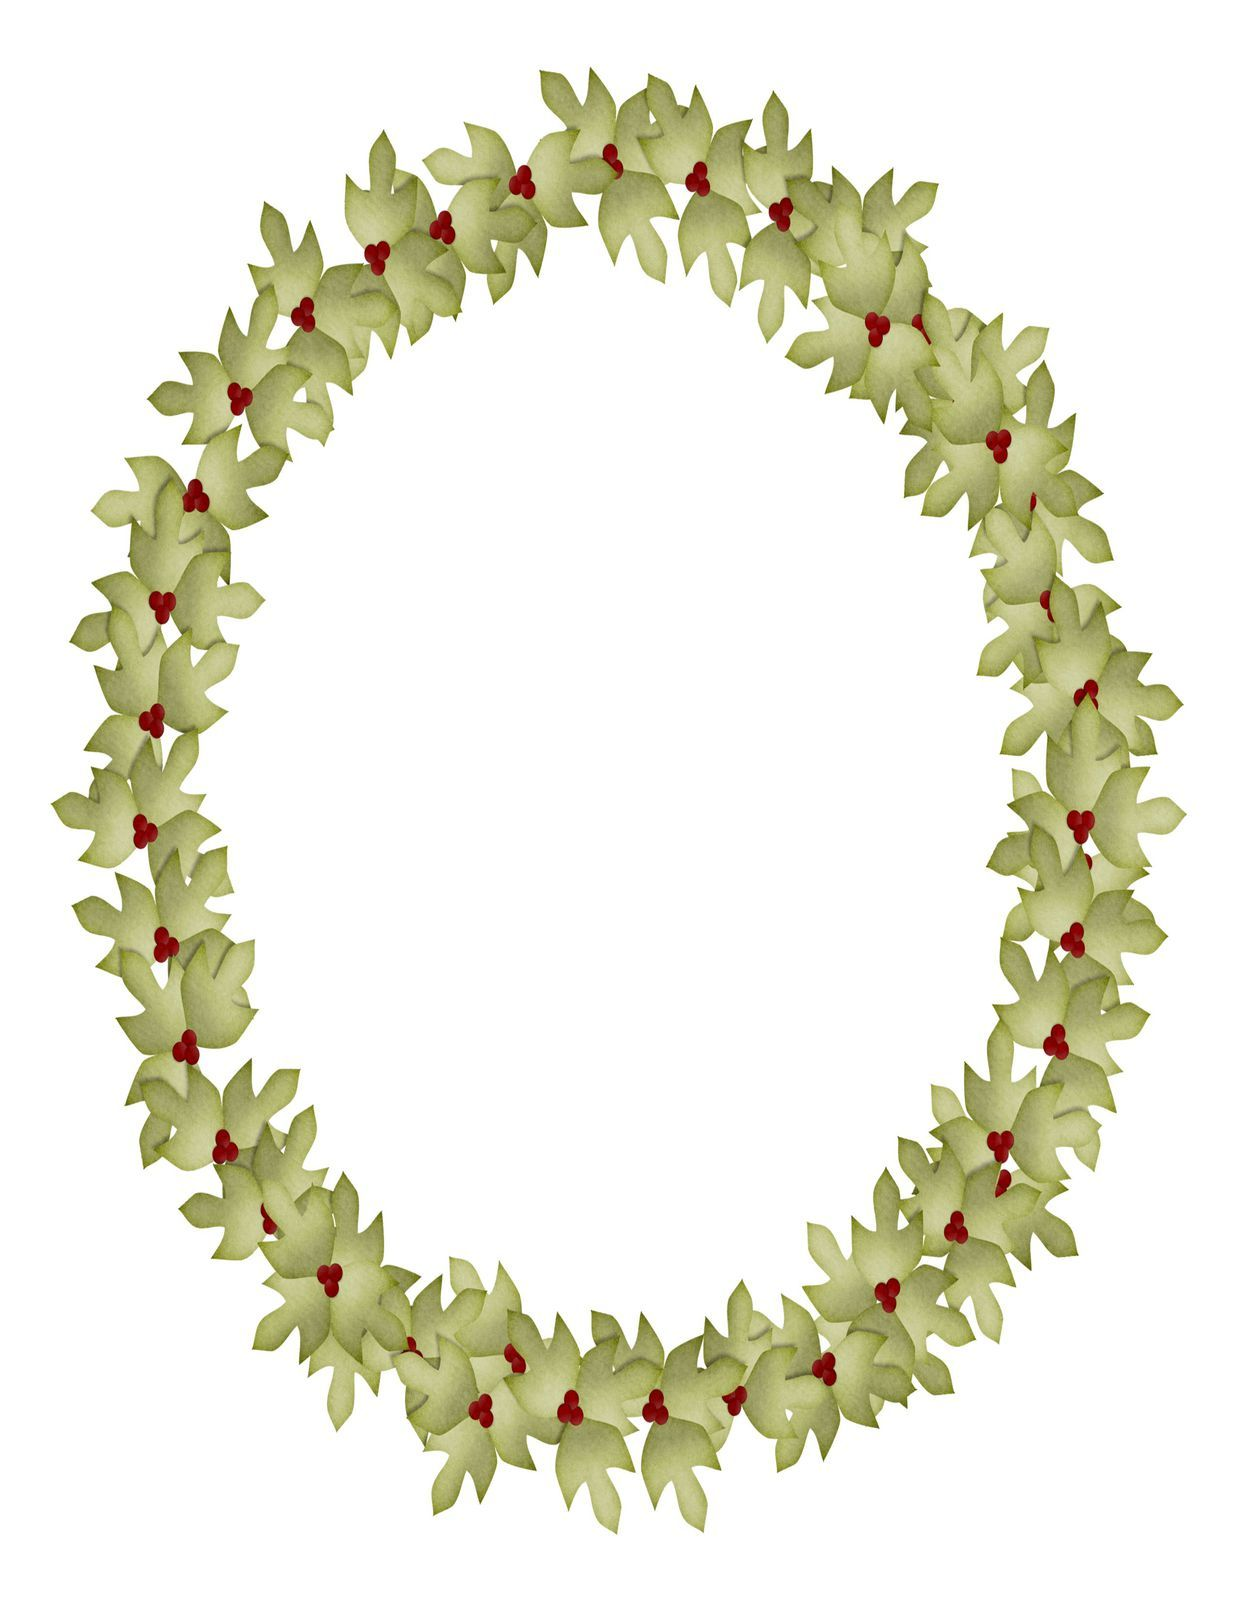 Holly wreath framedigital downloadclipartartclipdigital art